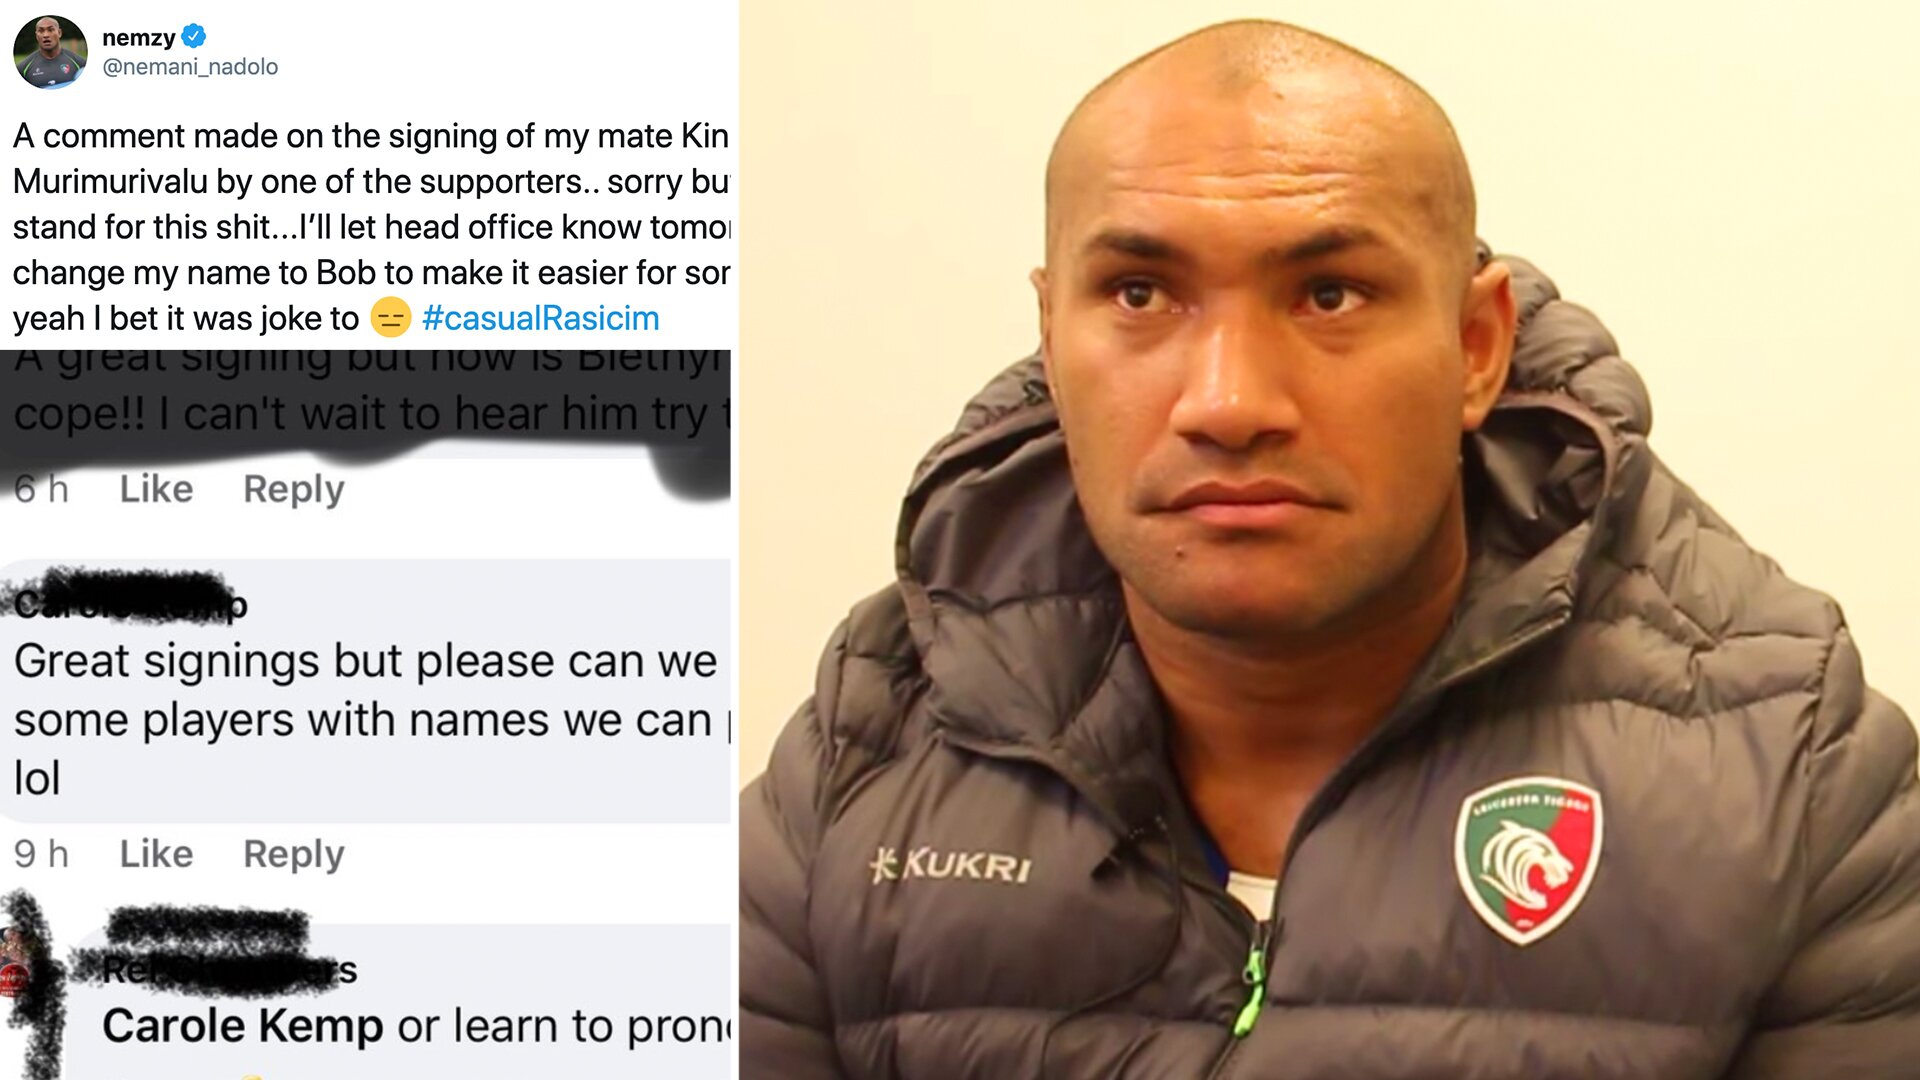 Nemani Nadolo has clashed with fans at his new club in post about casual racism